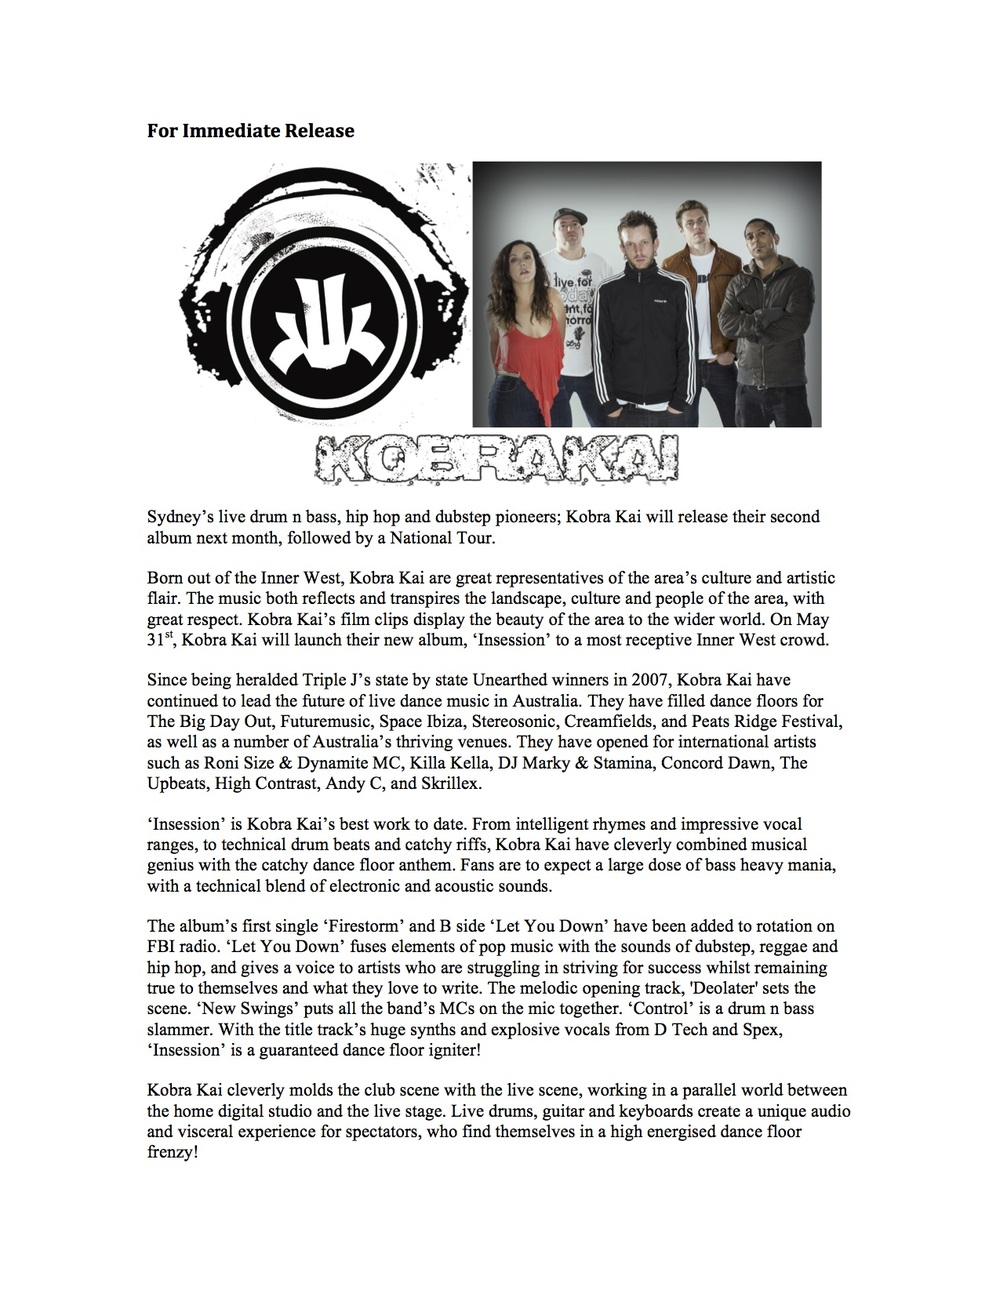 Press Release by Ace the Amara, created for Kobra Kai (Australian band). 2013.